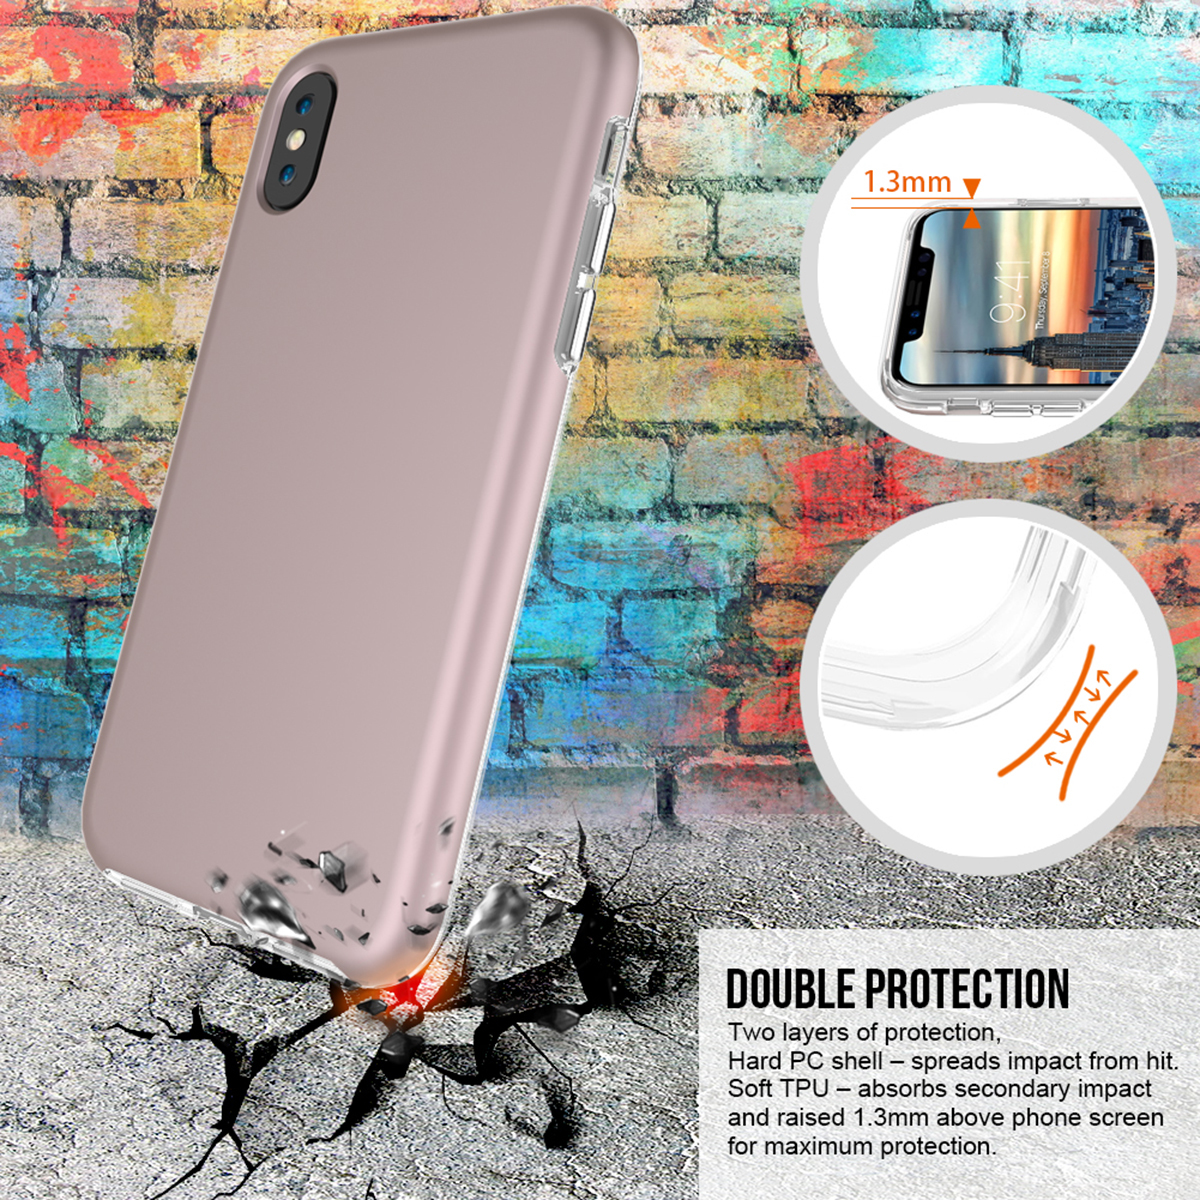 Grandever Hard Case For Iphone X Luxury 2 In 1 Rose 2in1 Shark Hybrid Armor Soft Huawei P9 245dd194 F04b 40b0 9d9e 89d5c9cd2ad0